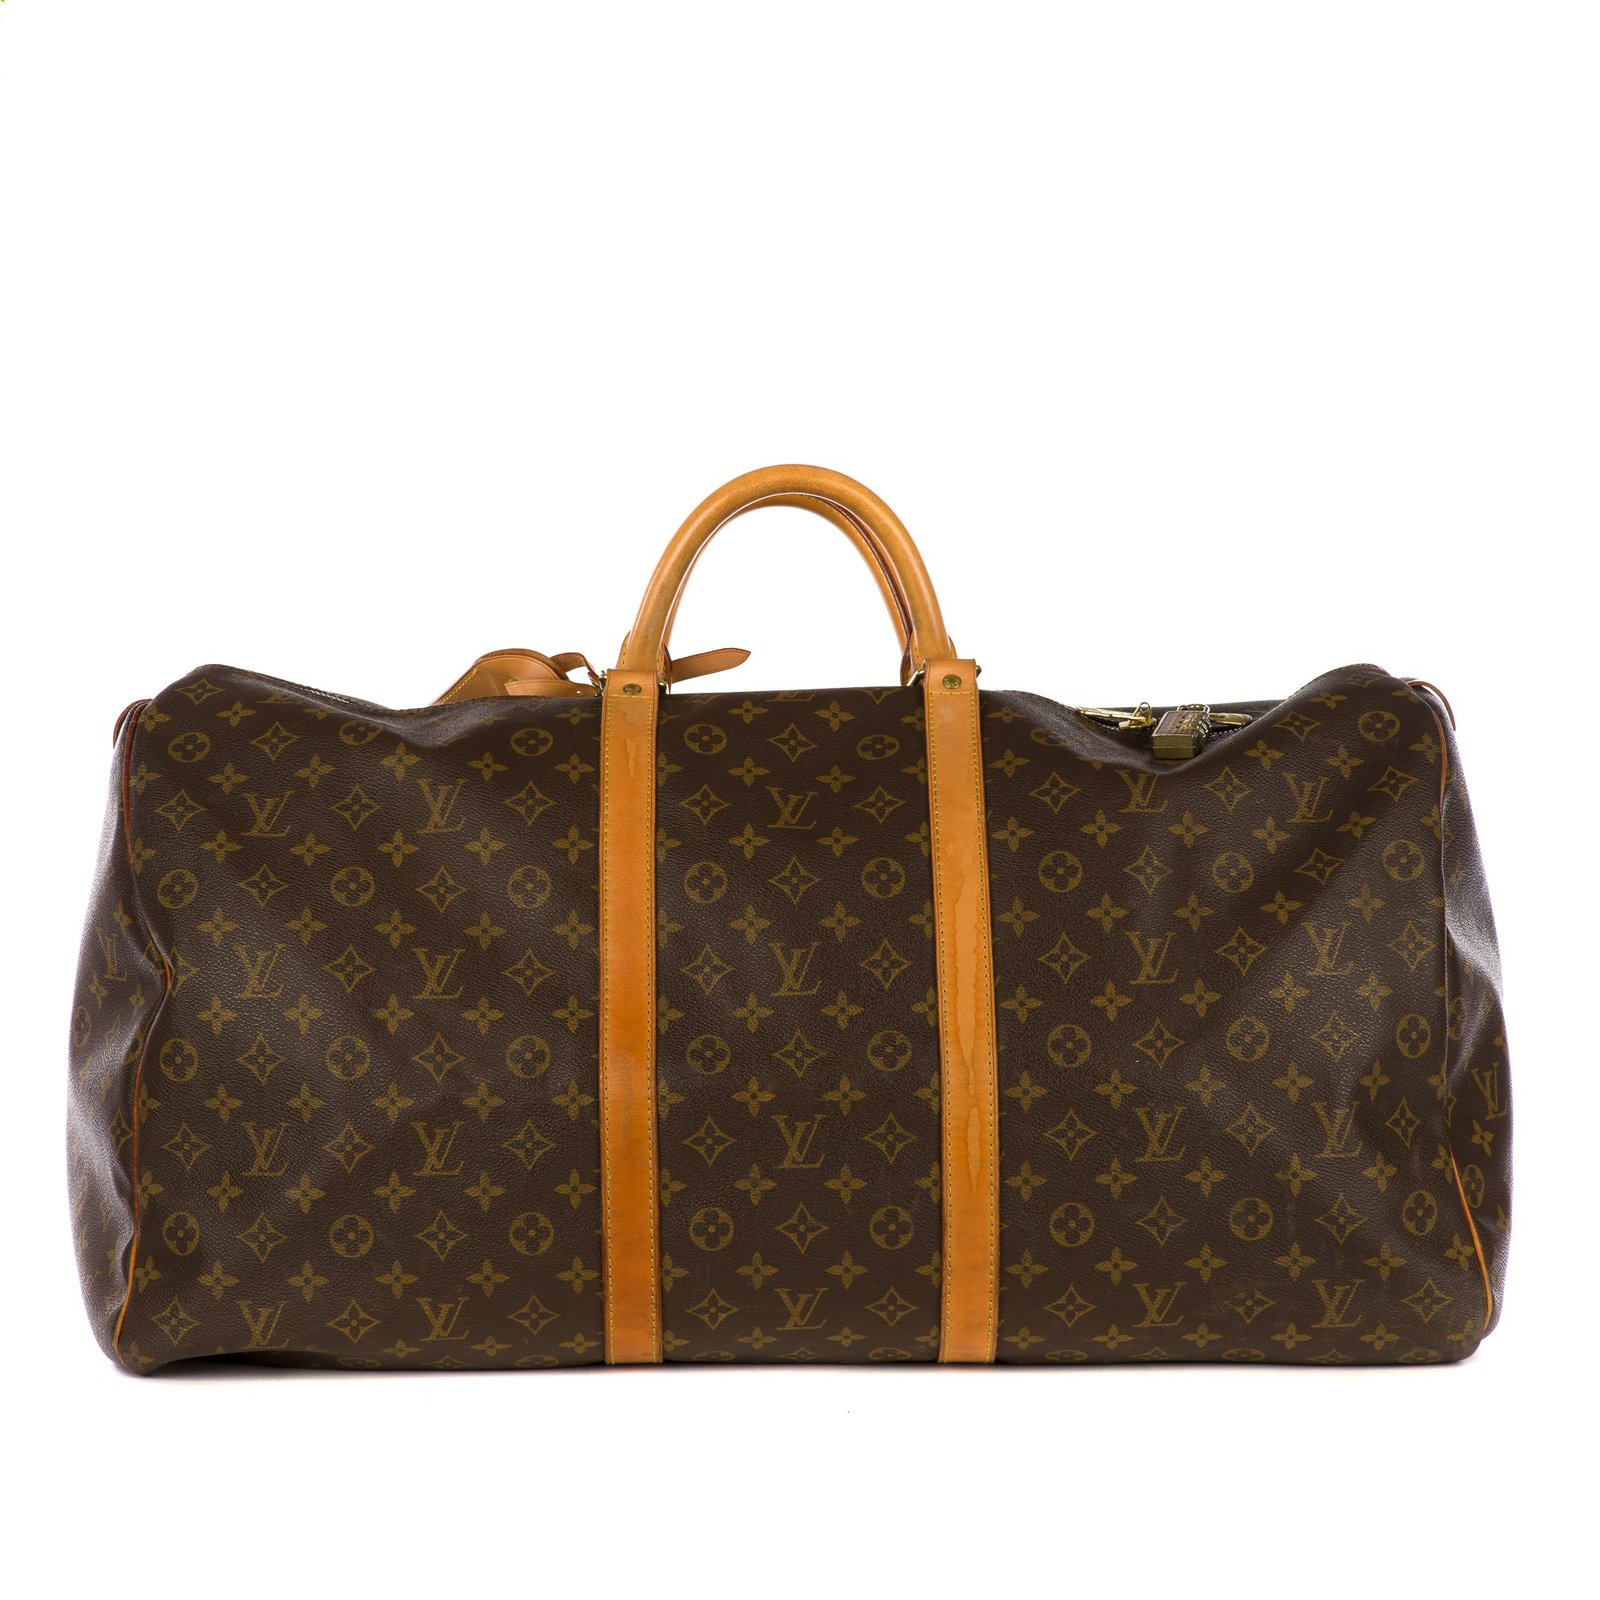 383d6e51c429 Louis Vuitton Louis Vuitton Keepall Travel Bag 60 in monogram canvas and natural  leather, good